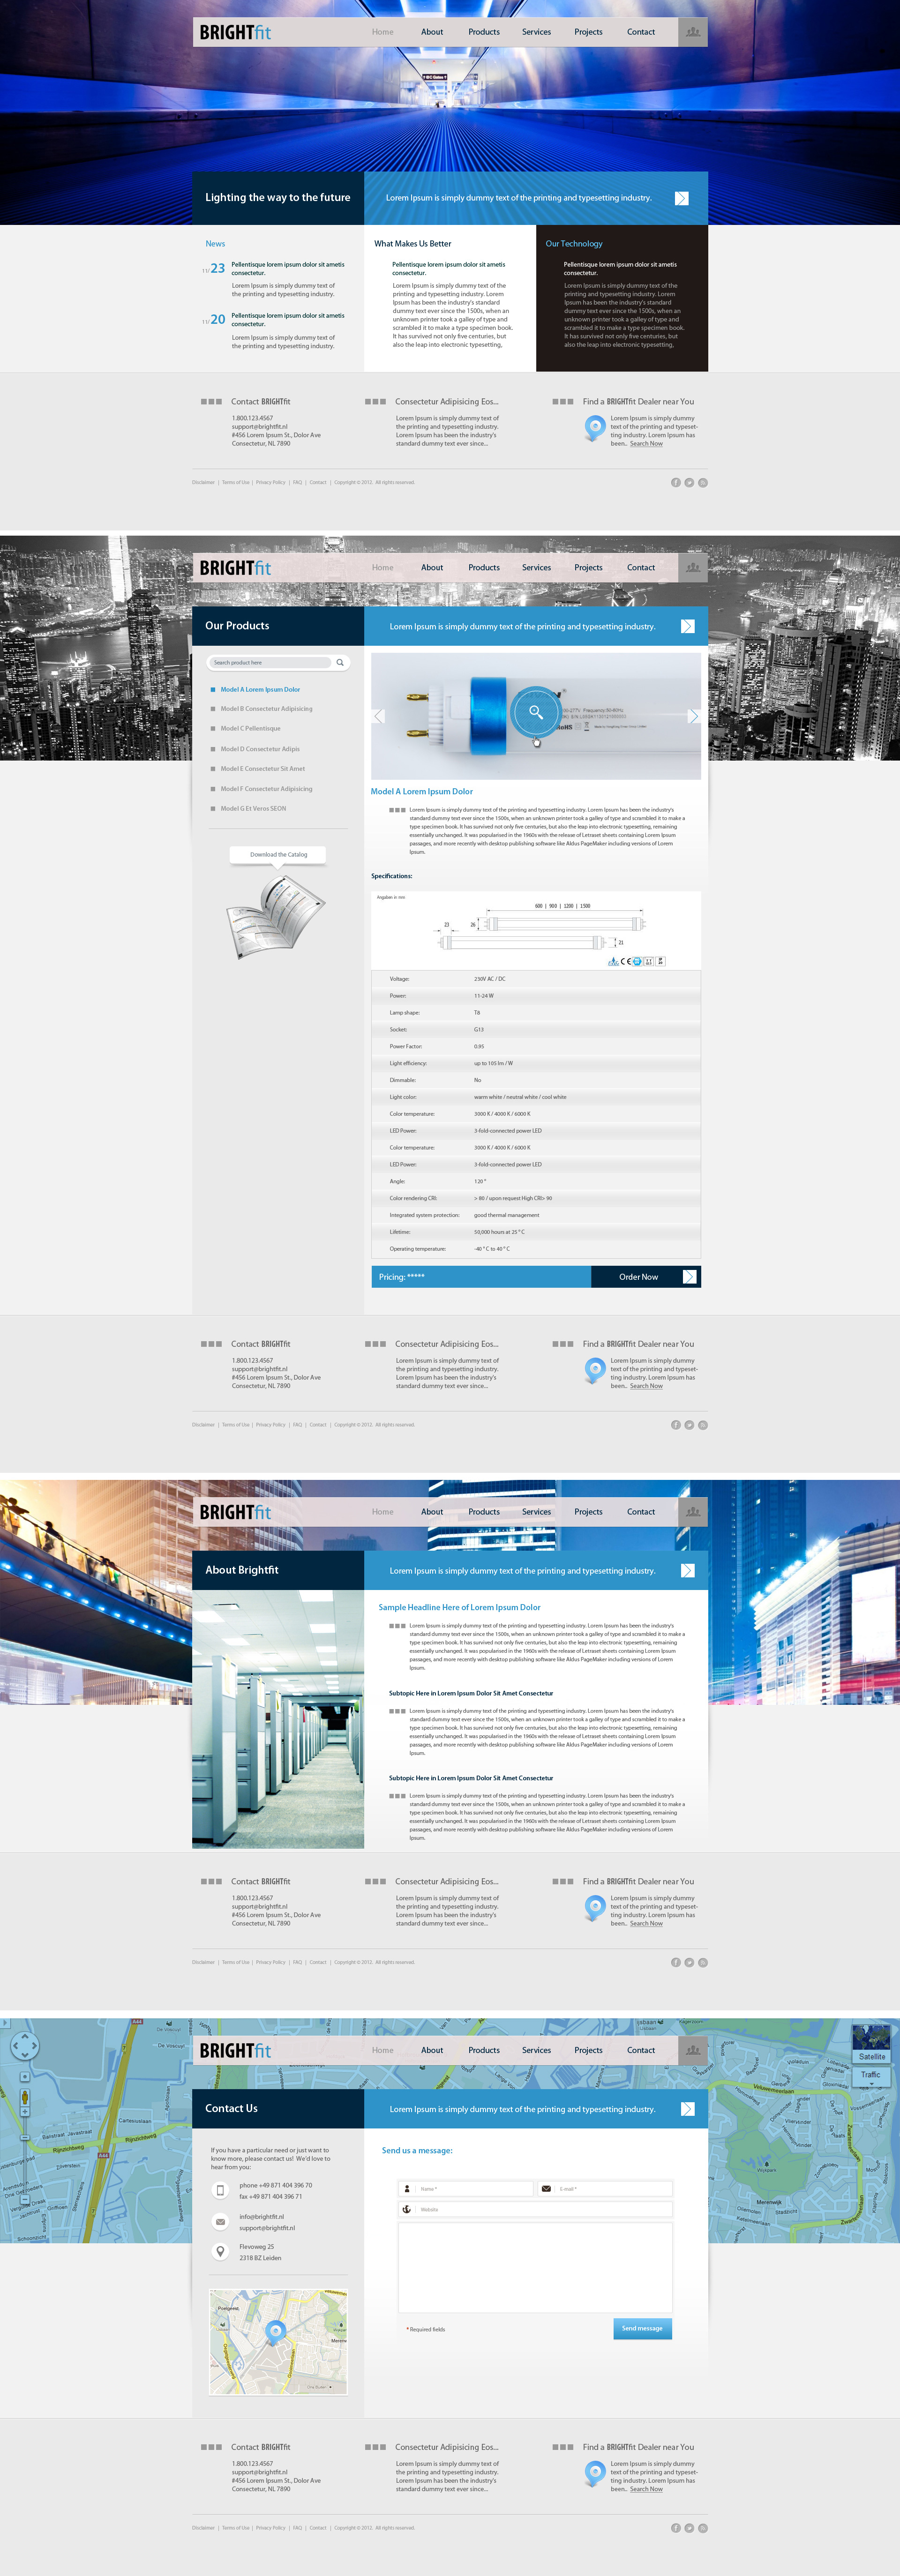 Web Design for a LED Company by bojok-mlsjr